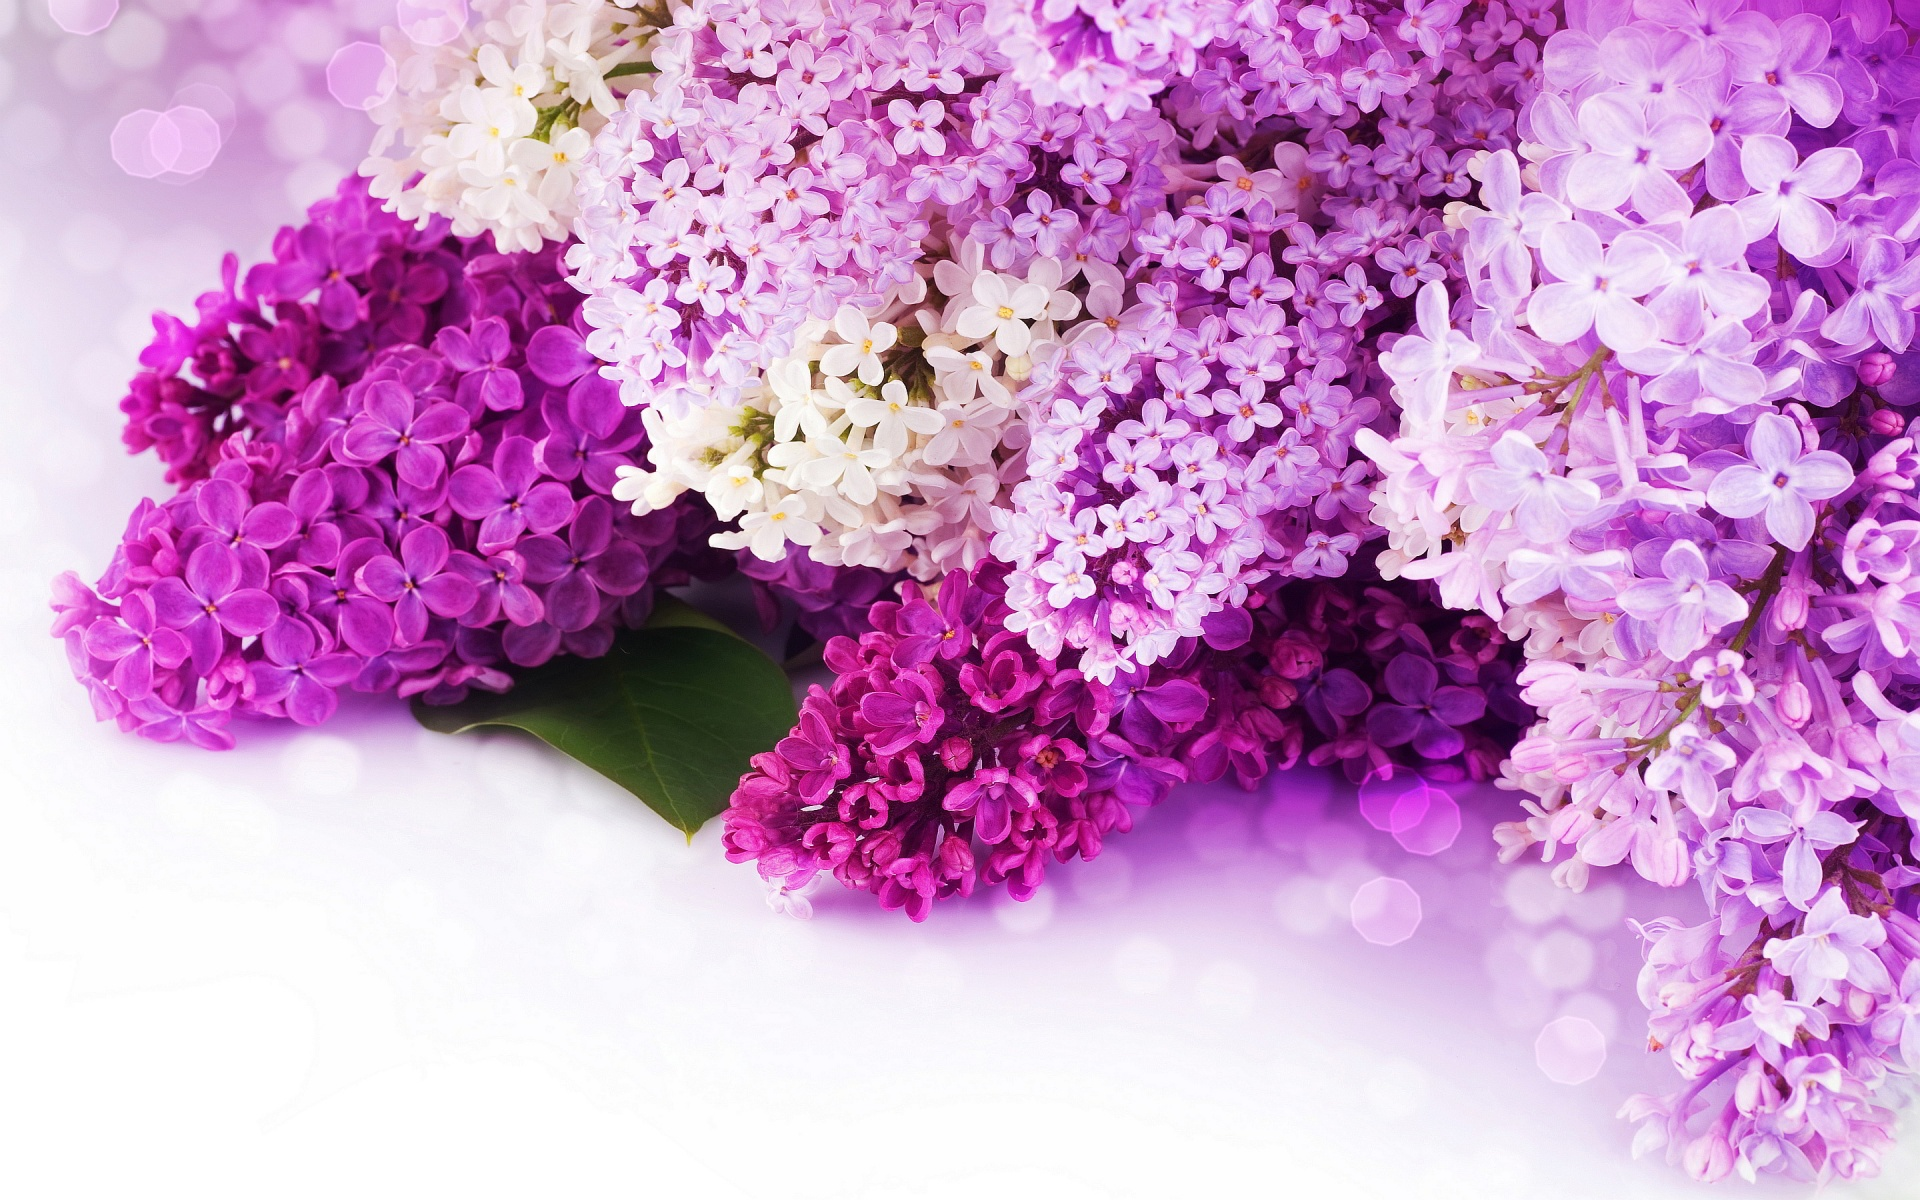 Pink and Purple Flower Background hd wallpaper background desktop 1920x1200